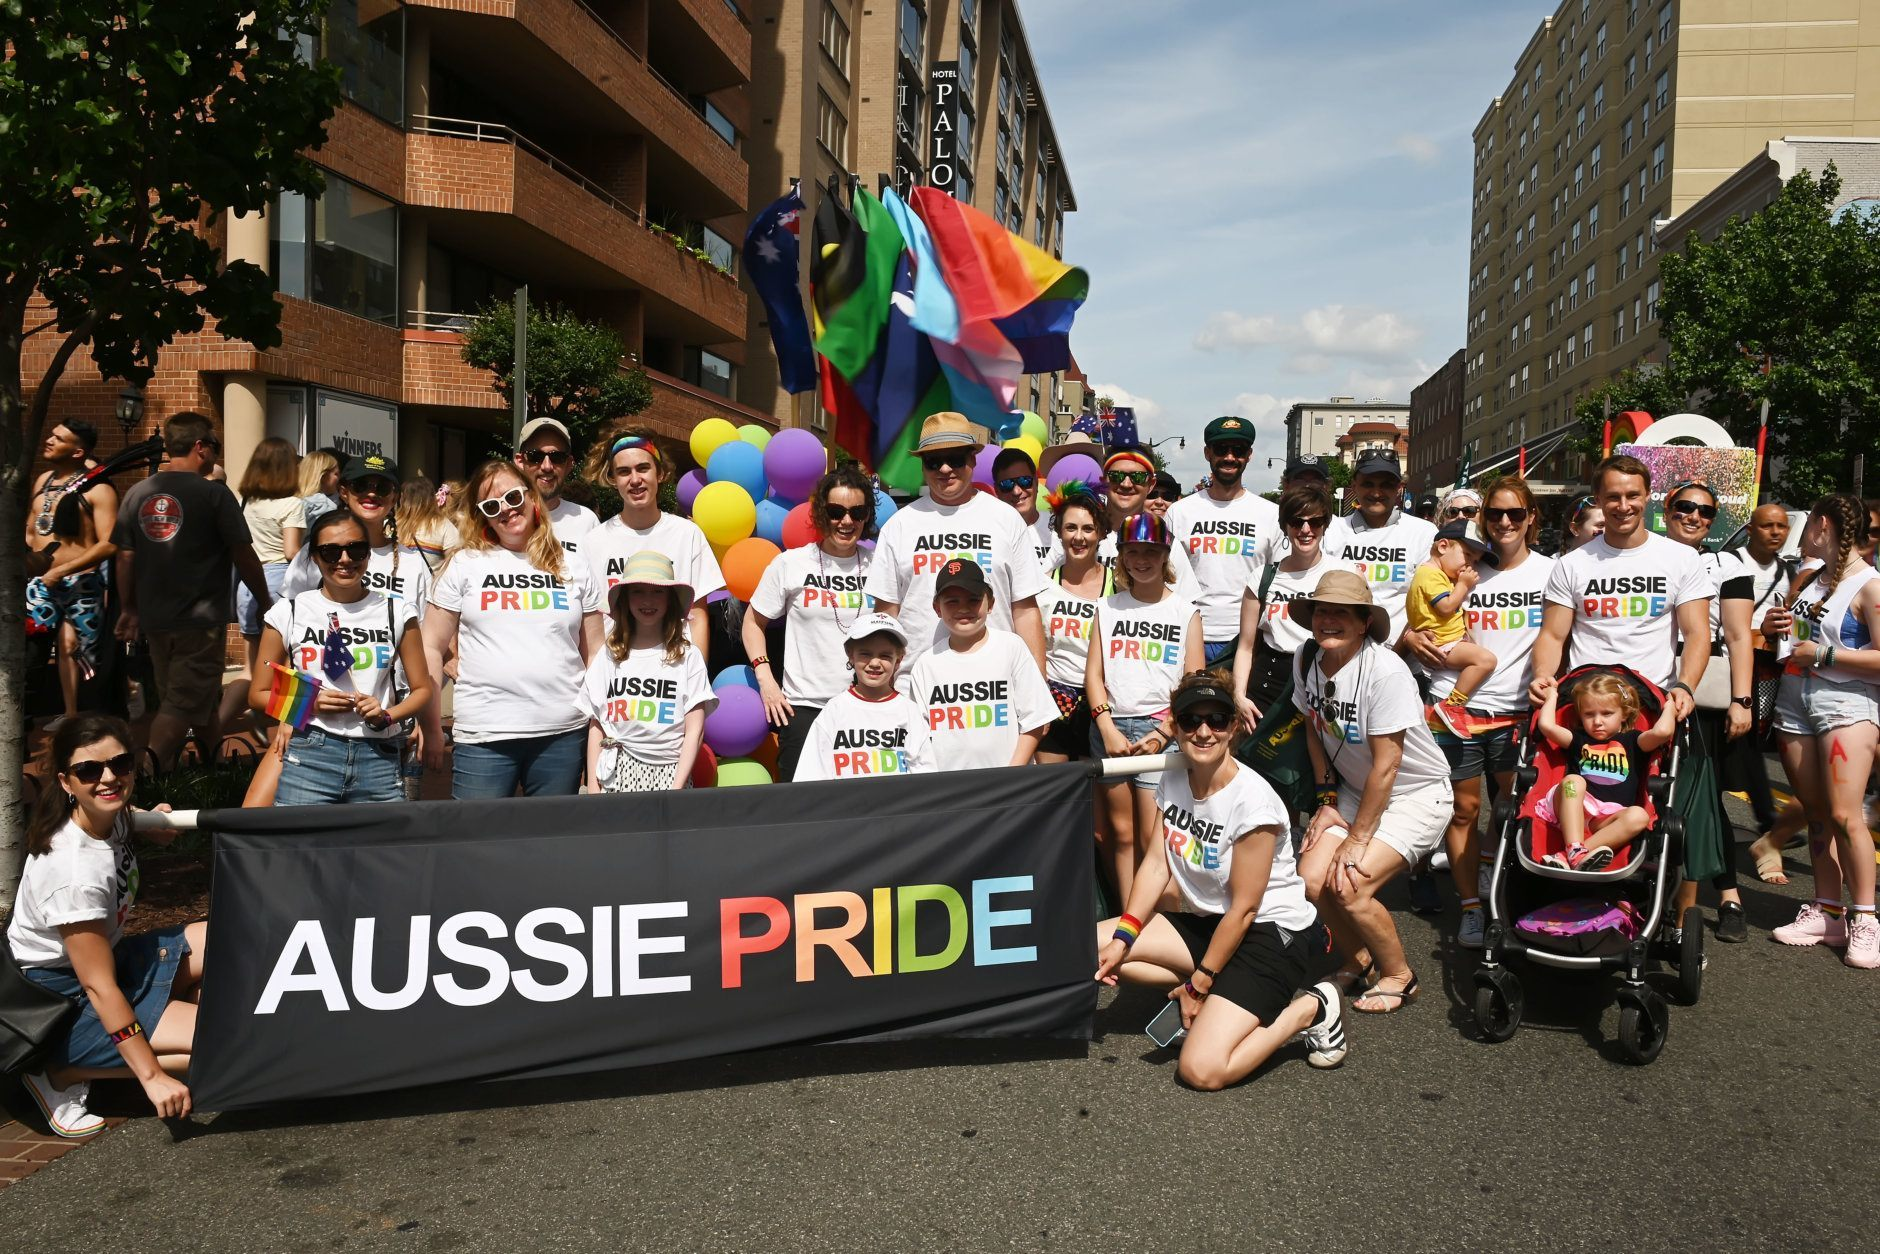 Australians celebrate Pride Month during the 2019 Capital Pride Parade. (Courtesy Shannon Finney Photography)